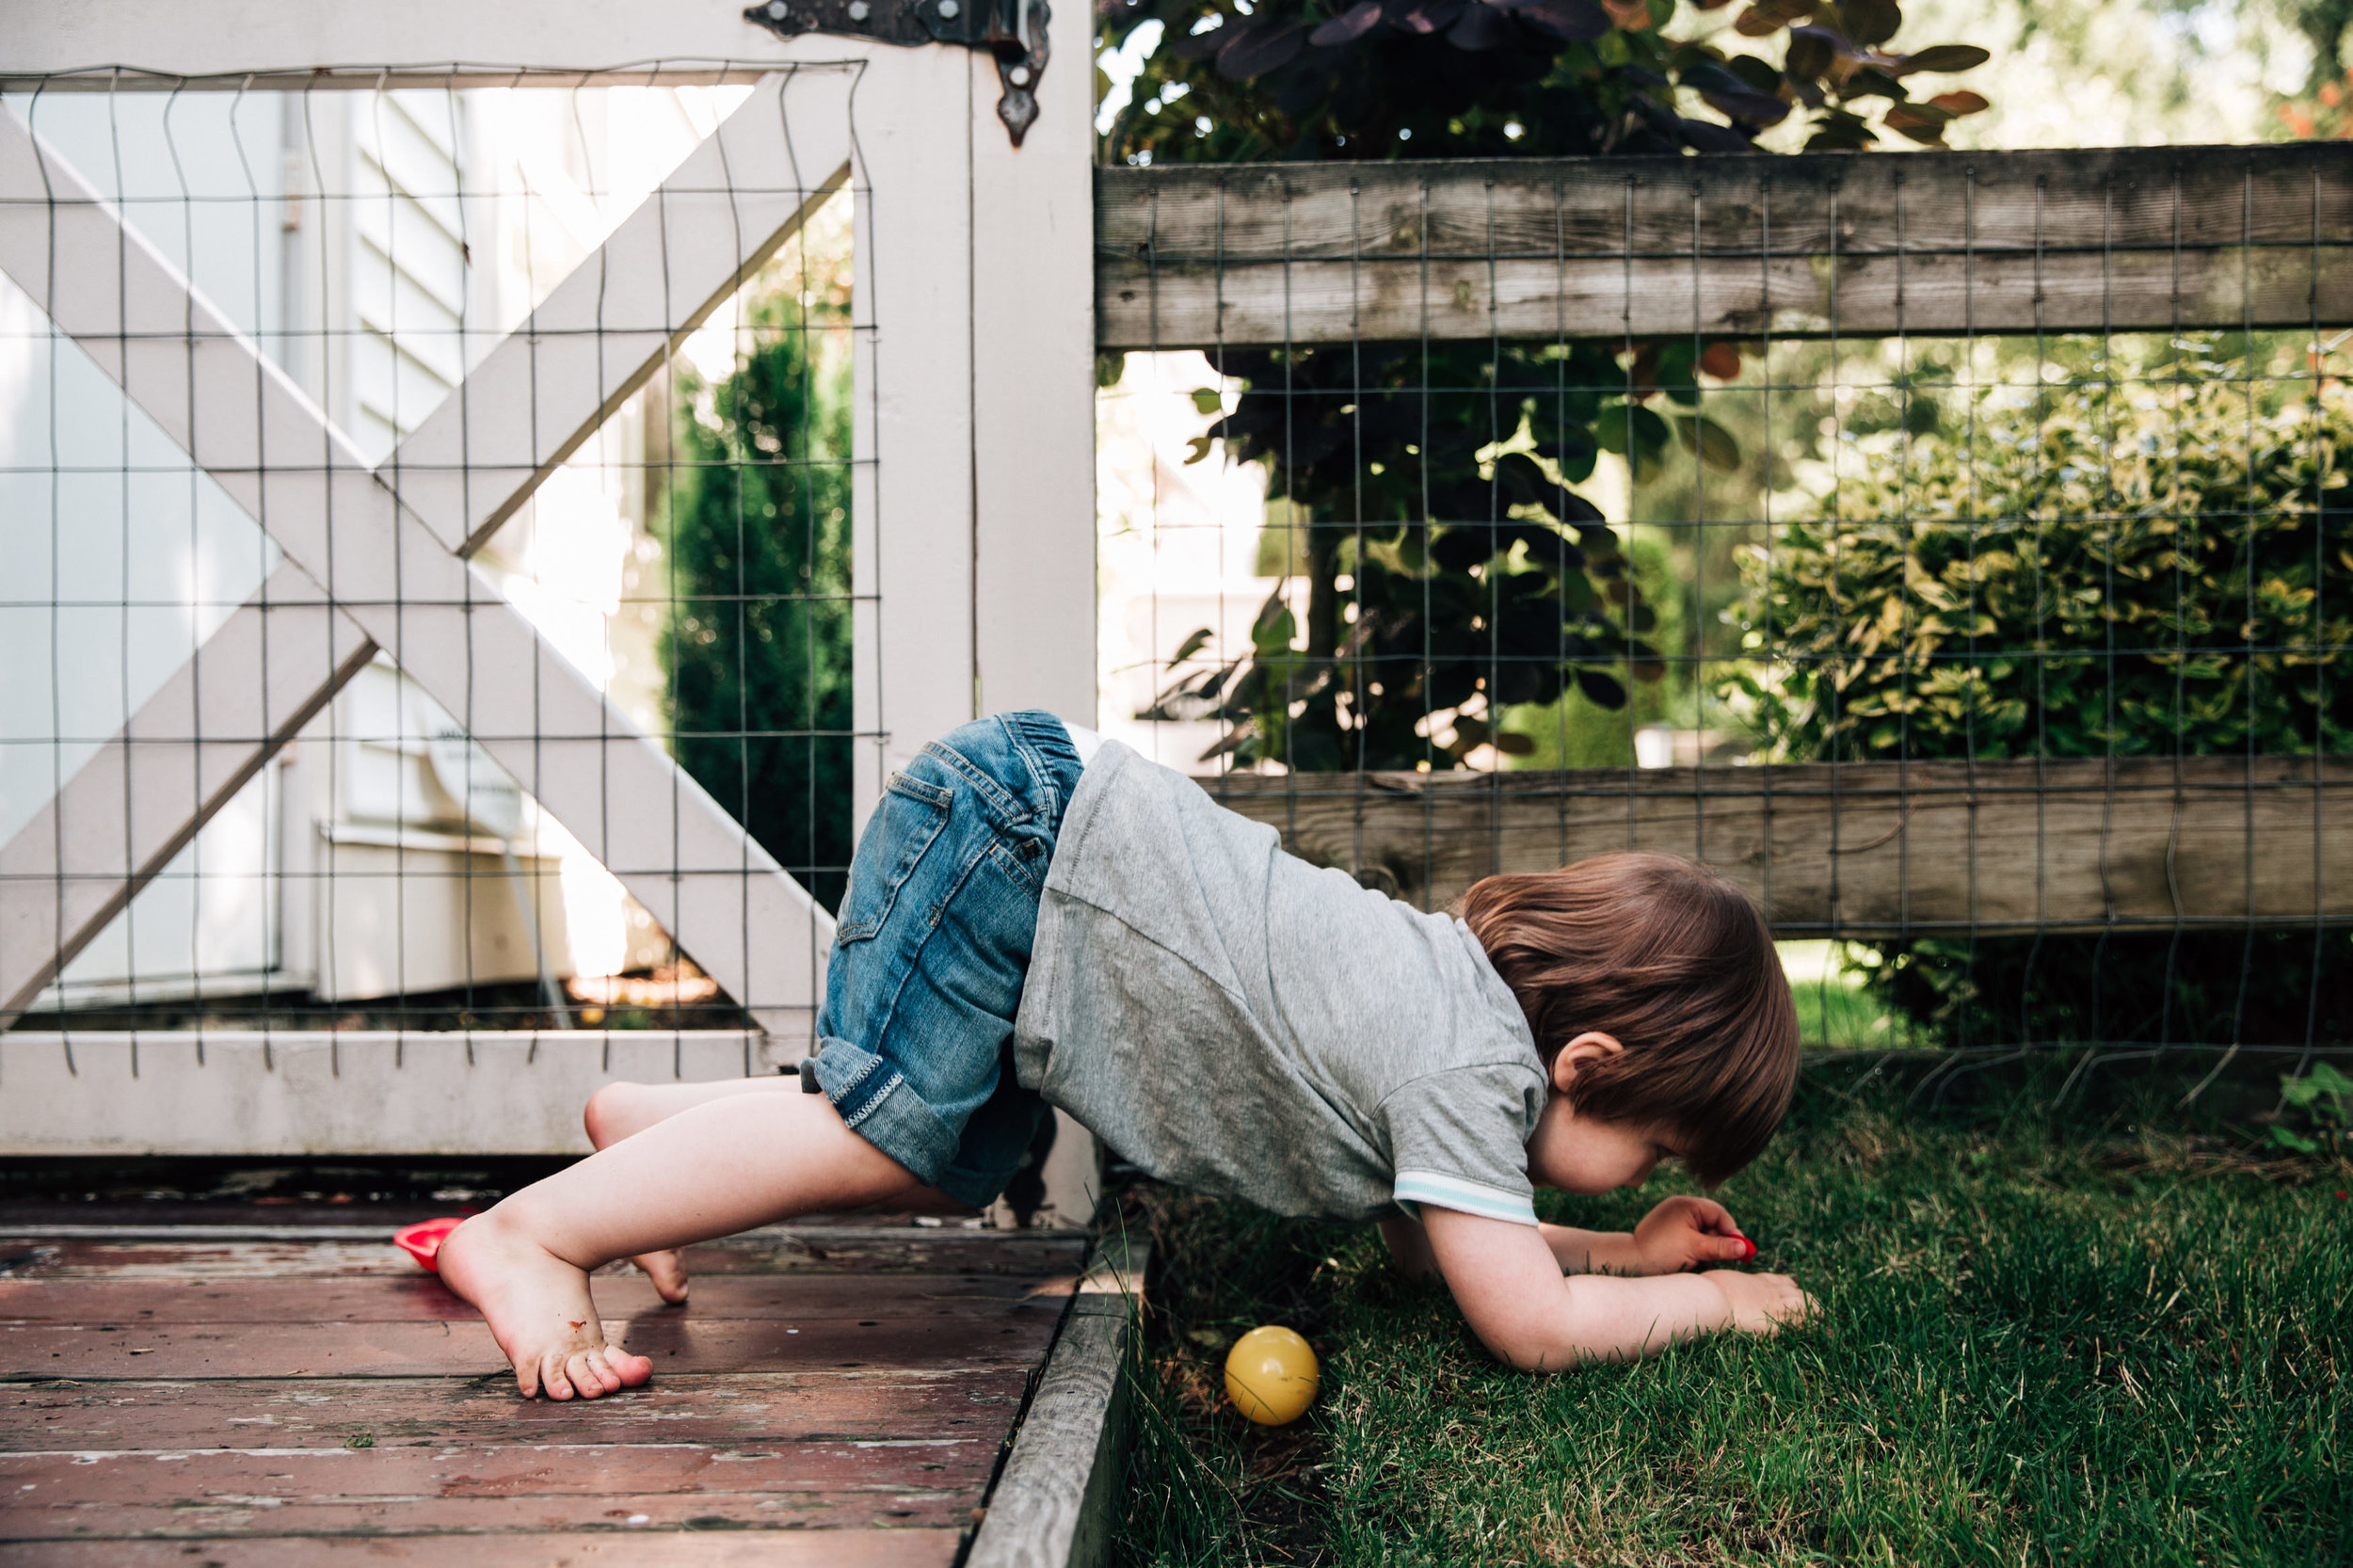 toddler on all fours climbing over a small ditch with a ball in it